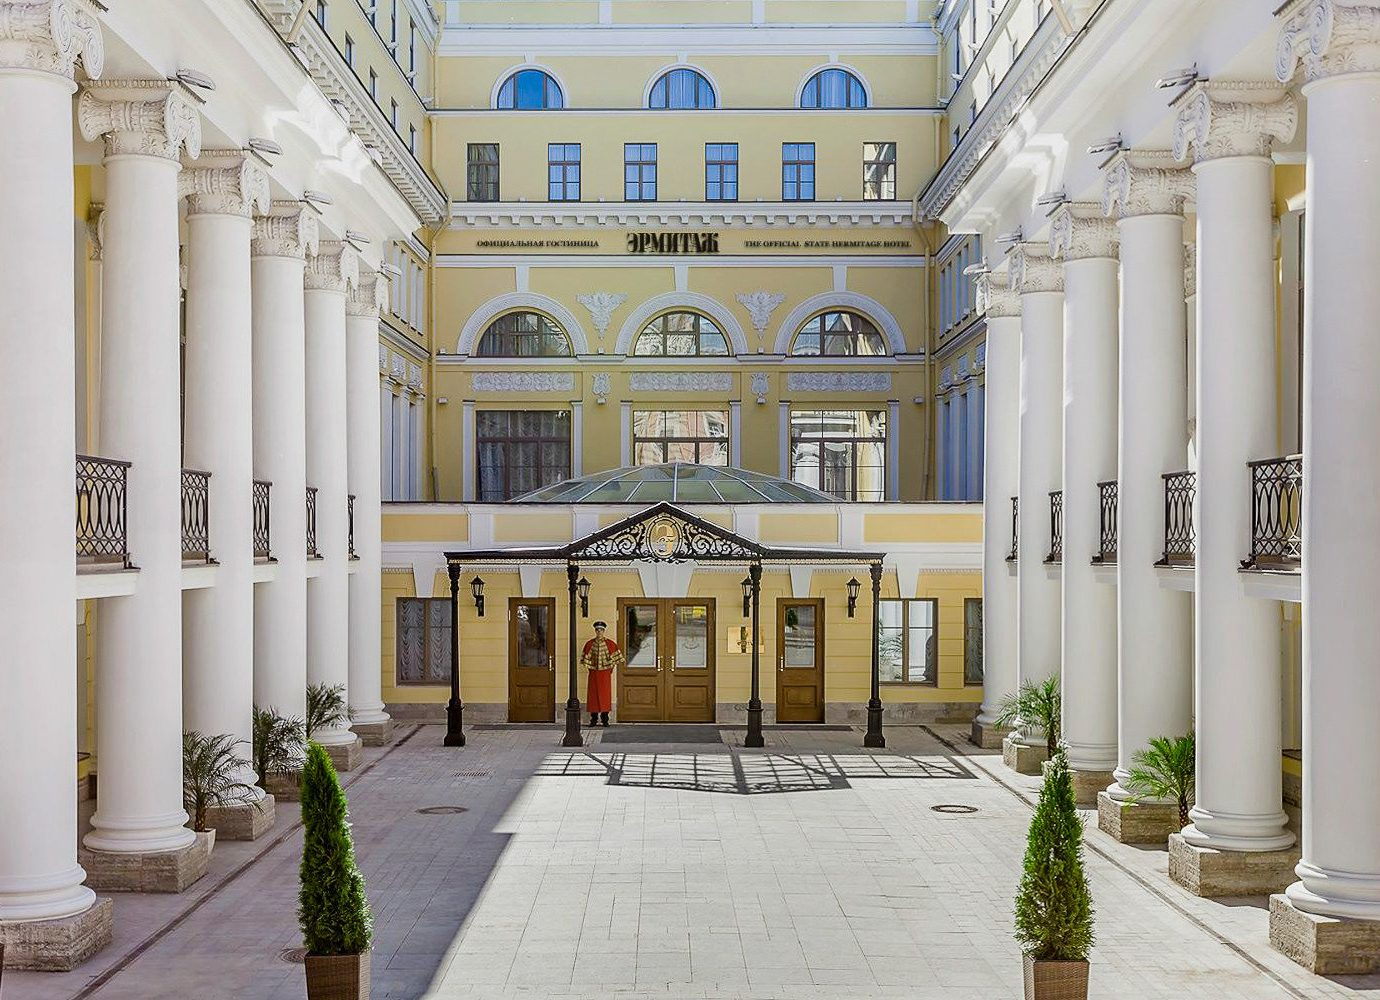 Arts + Culture Hotels Jetsetter Guides Luxury Travel property building classical architecture column structure Courtyard palace arcade mansion colonnade